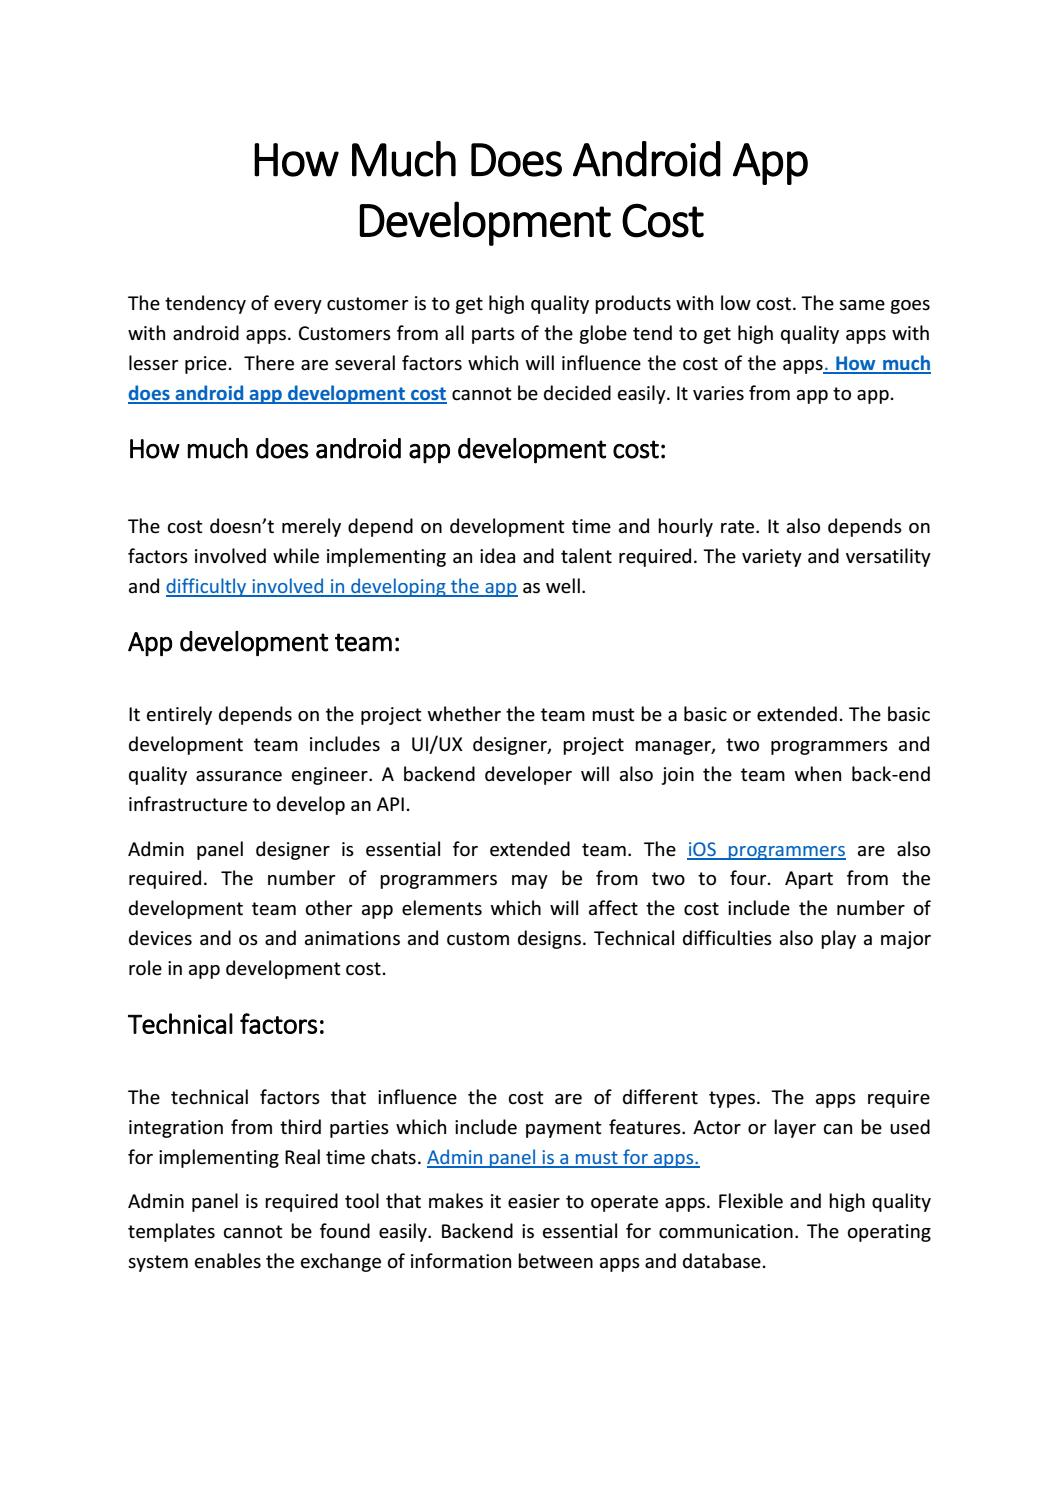 How Much Does Android App Development Cost by jaffaateret